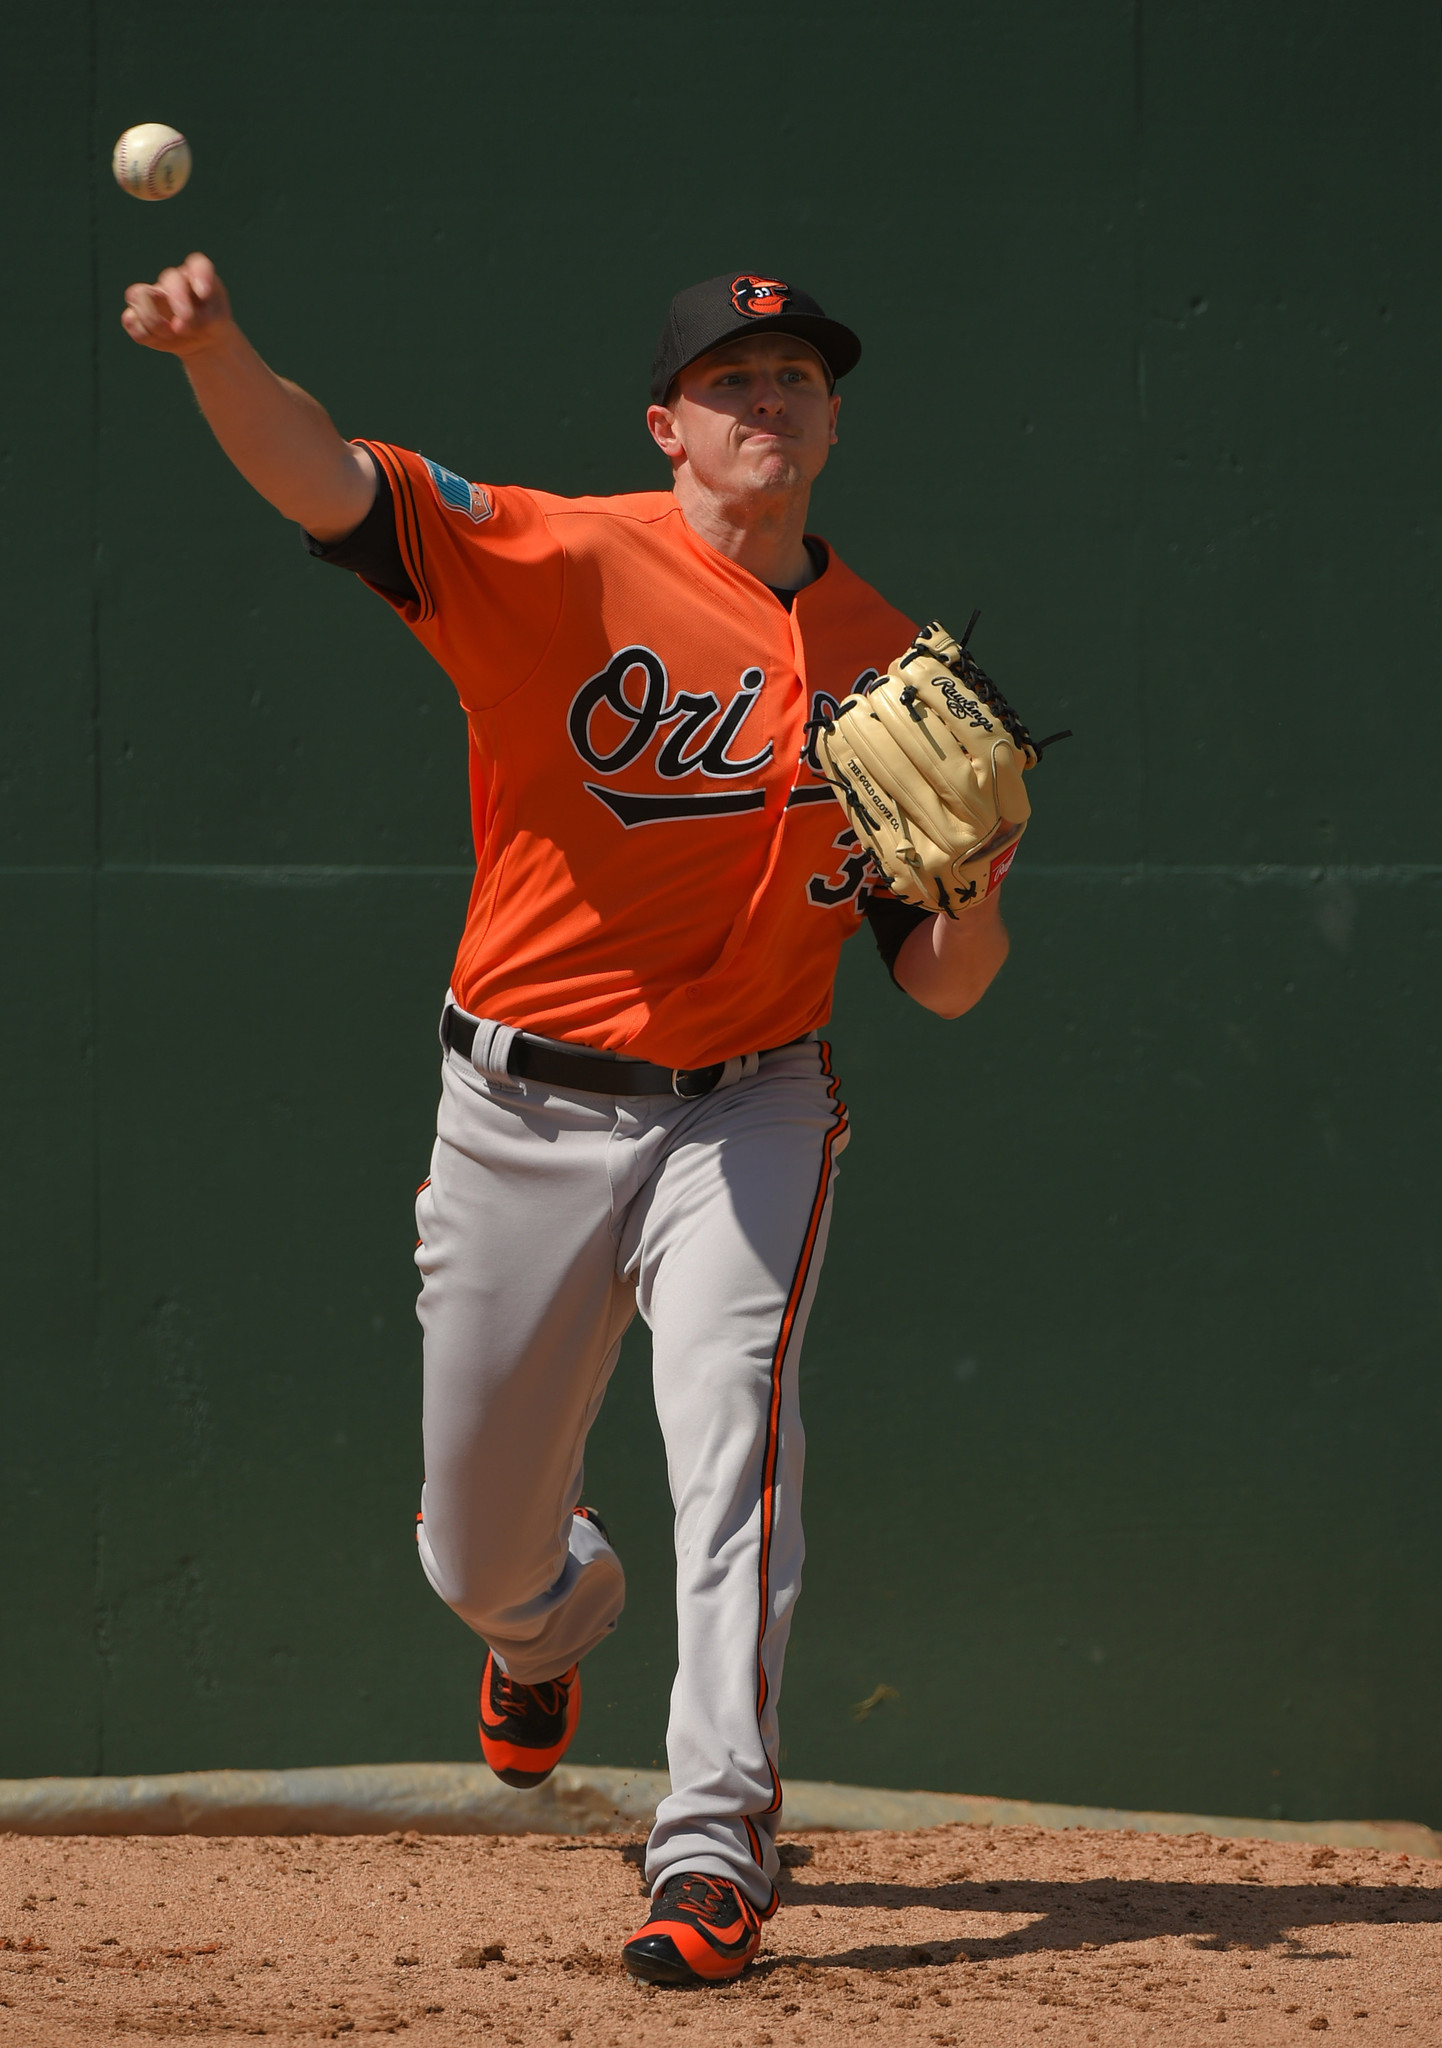 Bal-orioles-round-out-arbitration-process-thursday-with-hearing-with-reliever-brad-brach-20170215